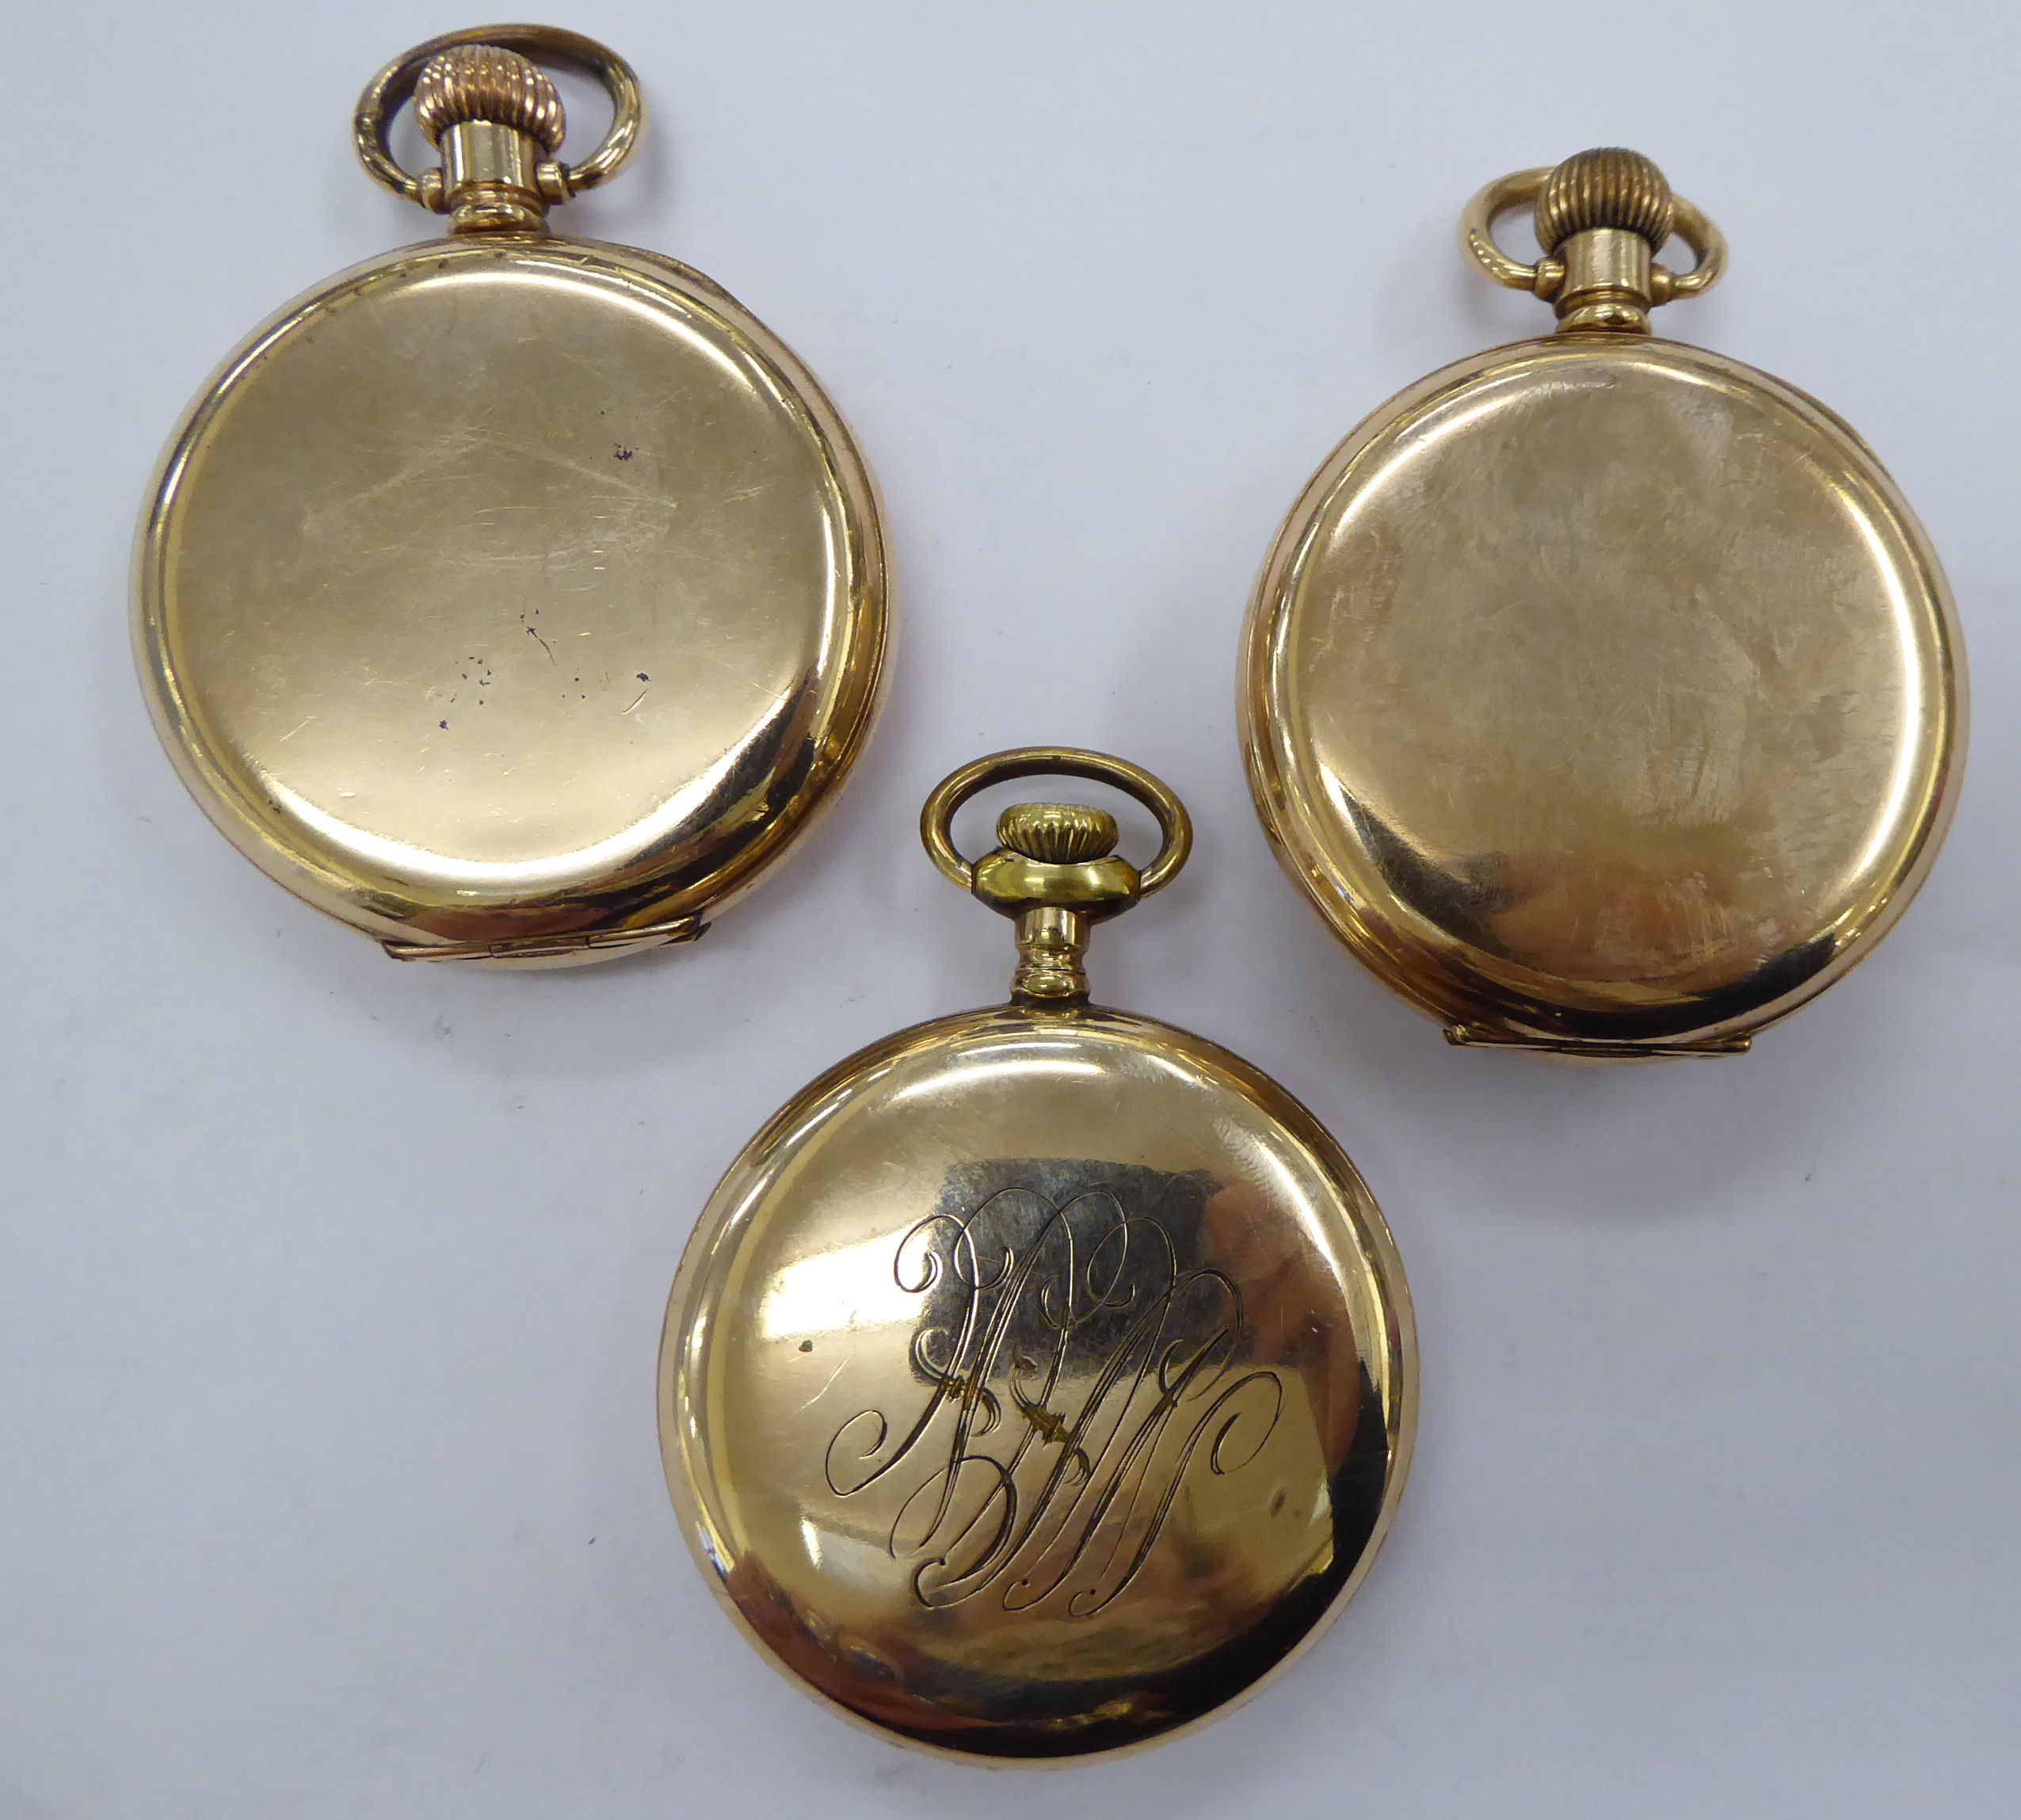 Three late 19th/early 20thC gold plated pocket watches with enamel Roman and Arabic dials - Image 3 of 3